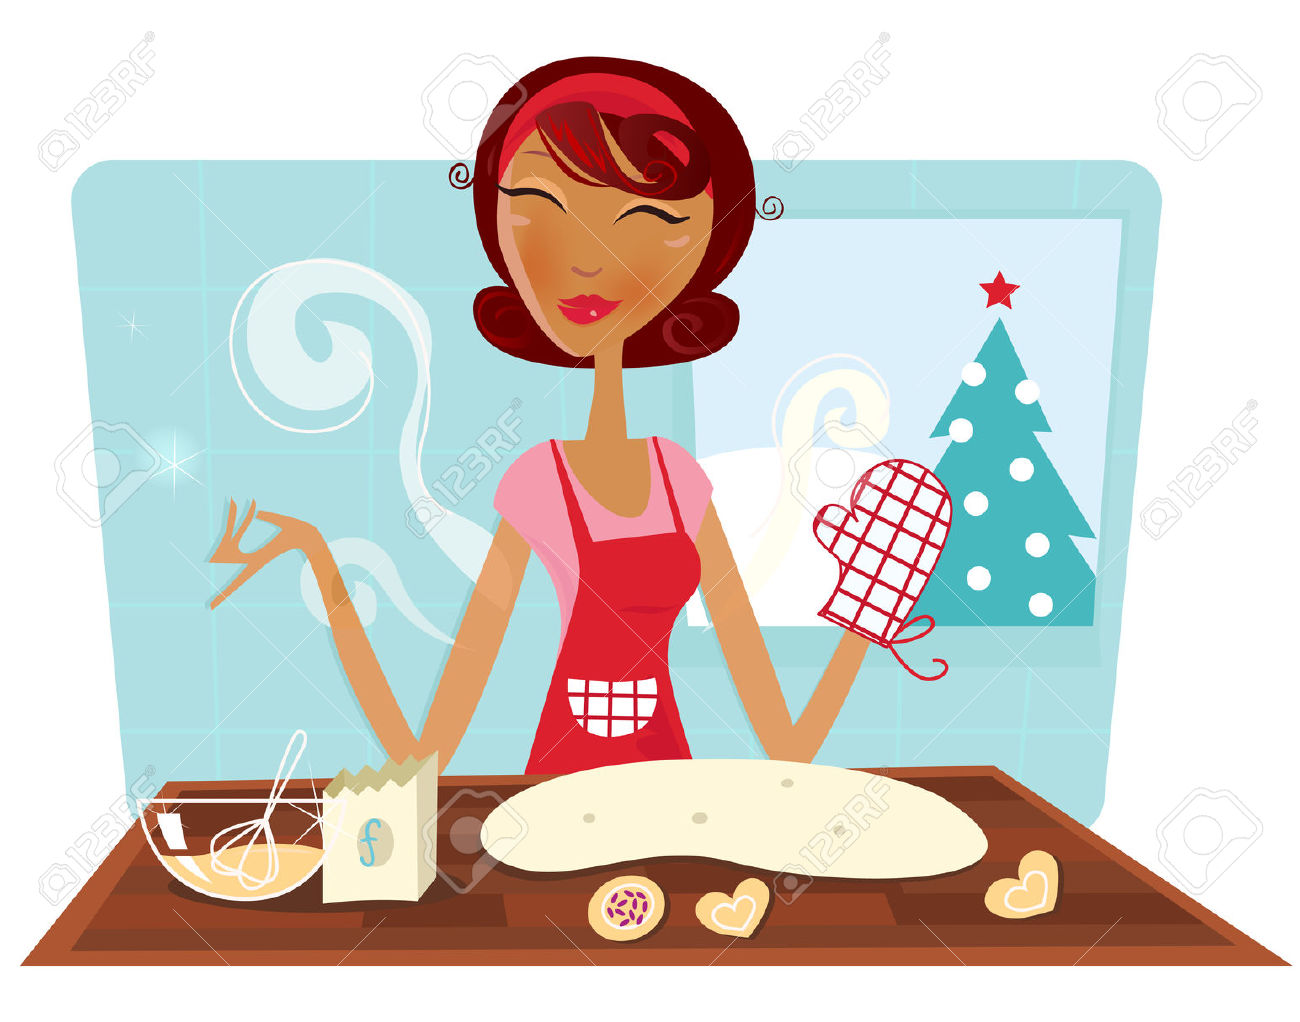 Free mom cliparts download. Clipart kitchen mother